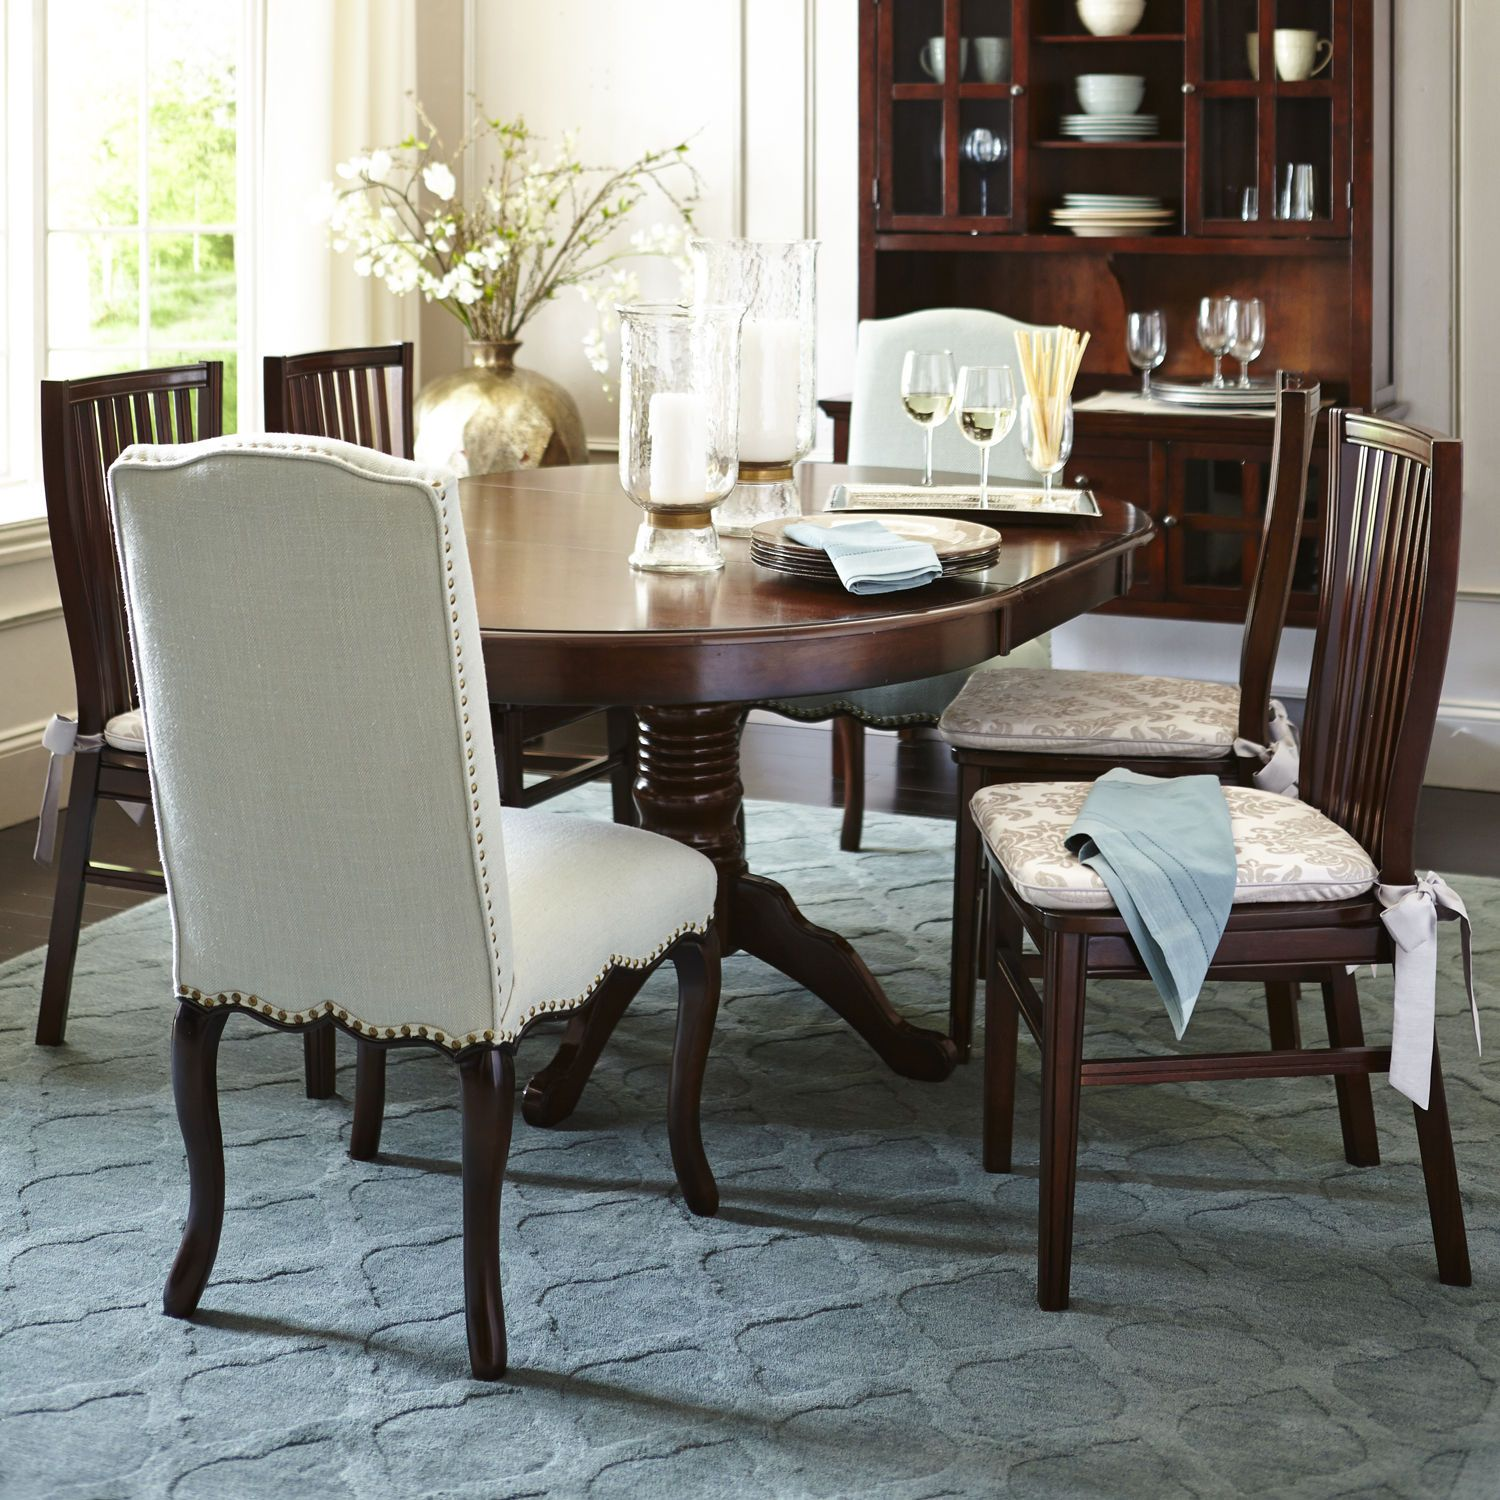 Good Way To Start Replacing Old Dining Room Chairs